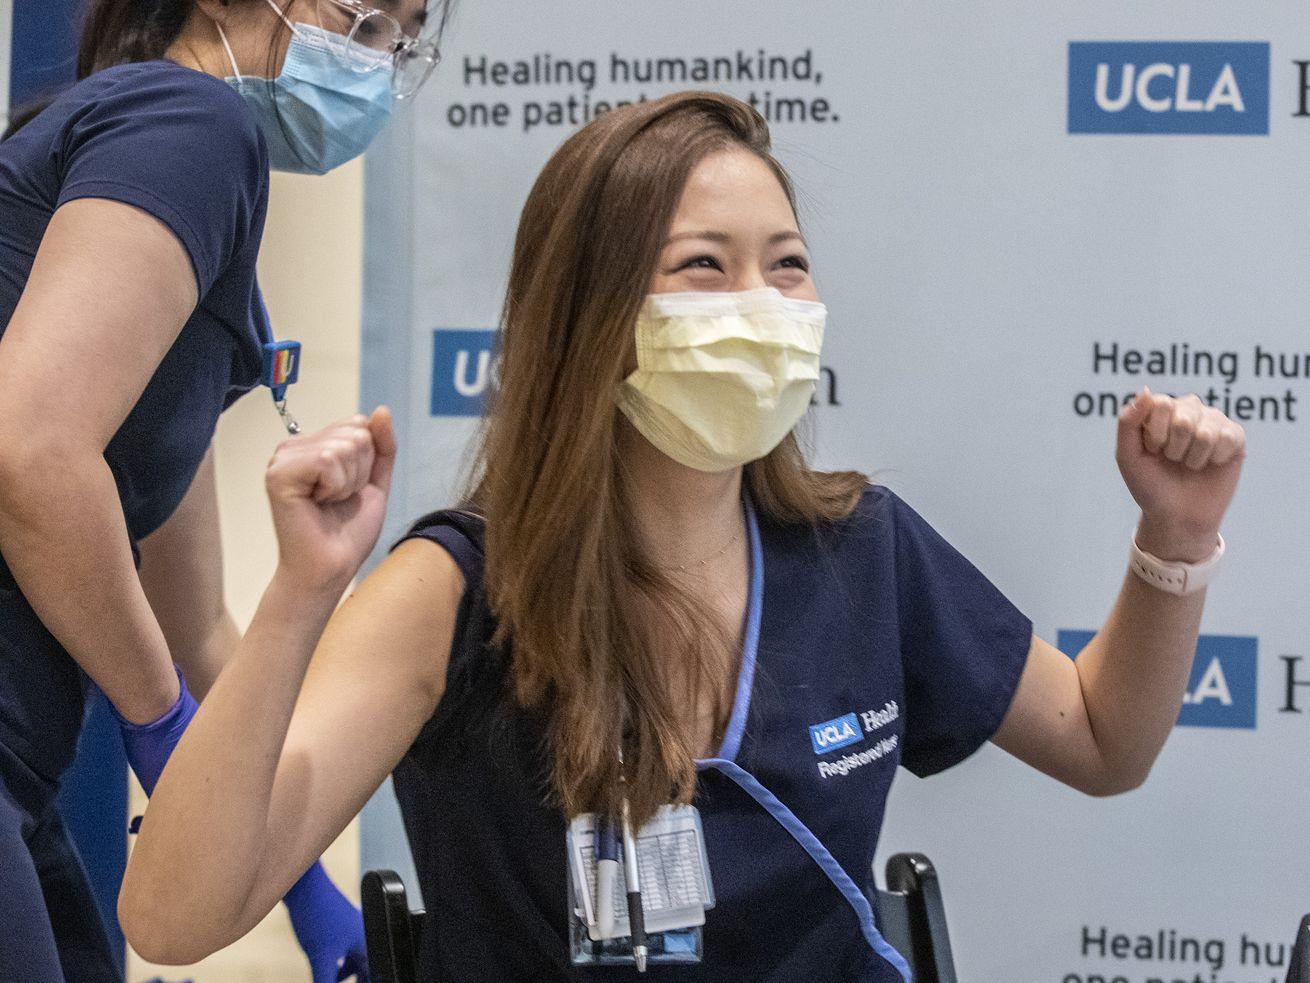 Nurse Nicole Chang celebrates after receiving one of the first injections of the COVID-19 vaccine at Ronald Reagan UCLA Medical Center.